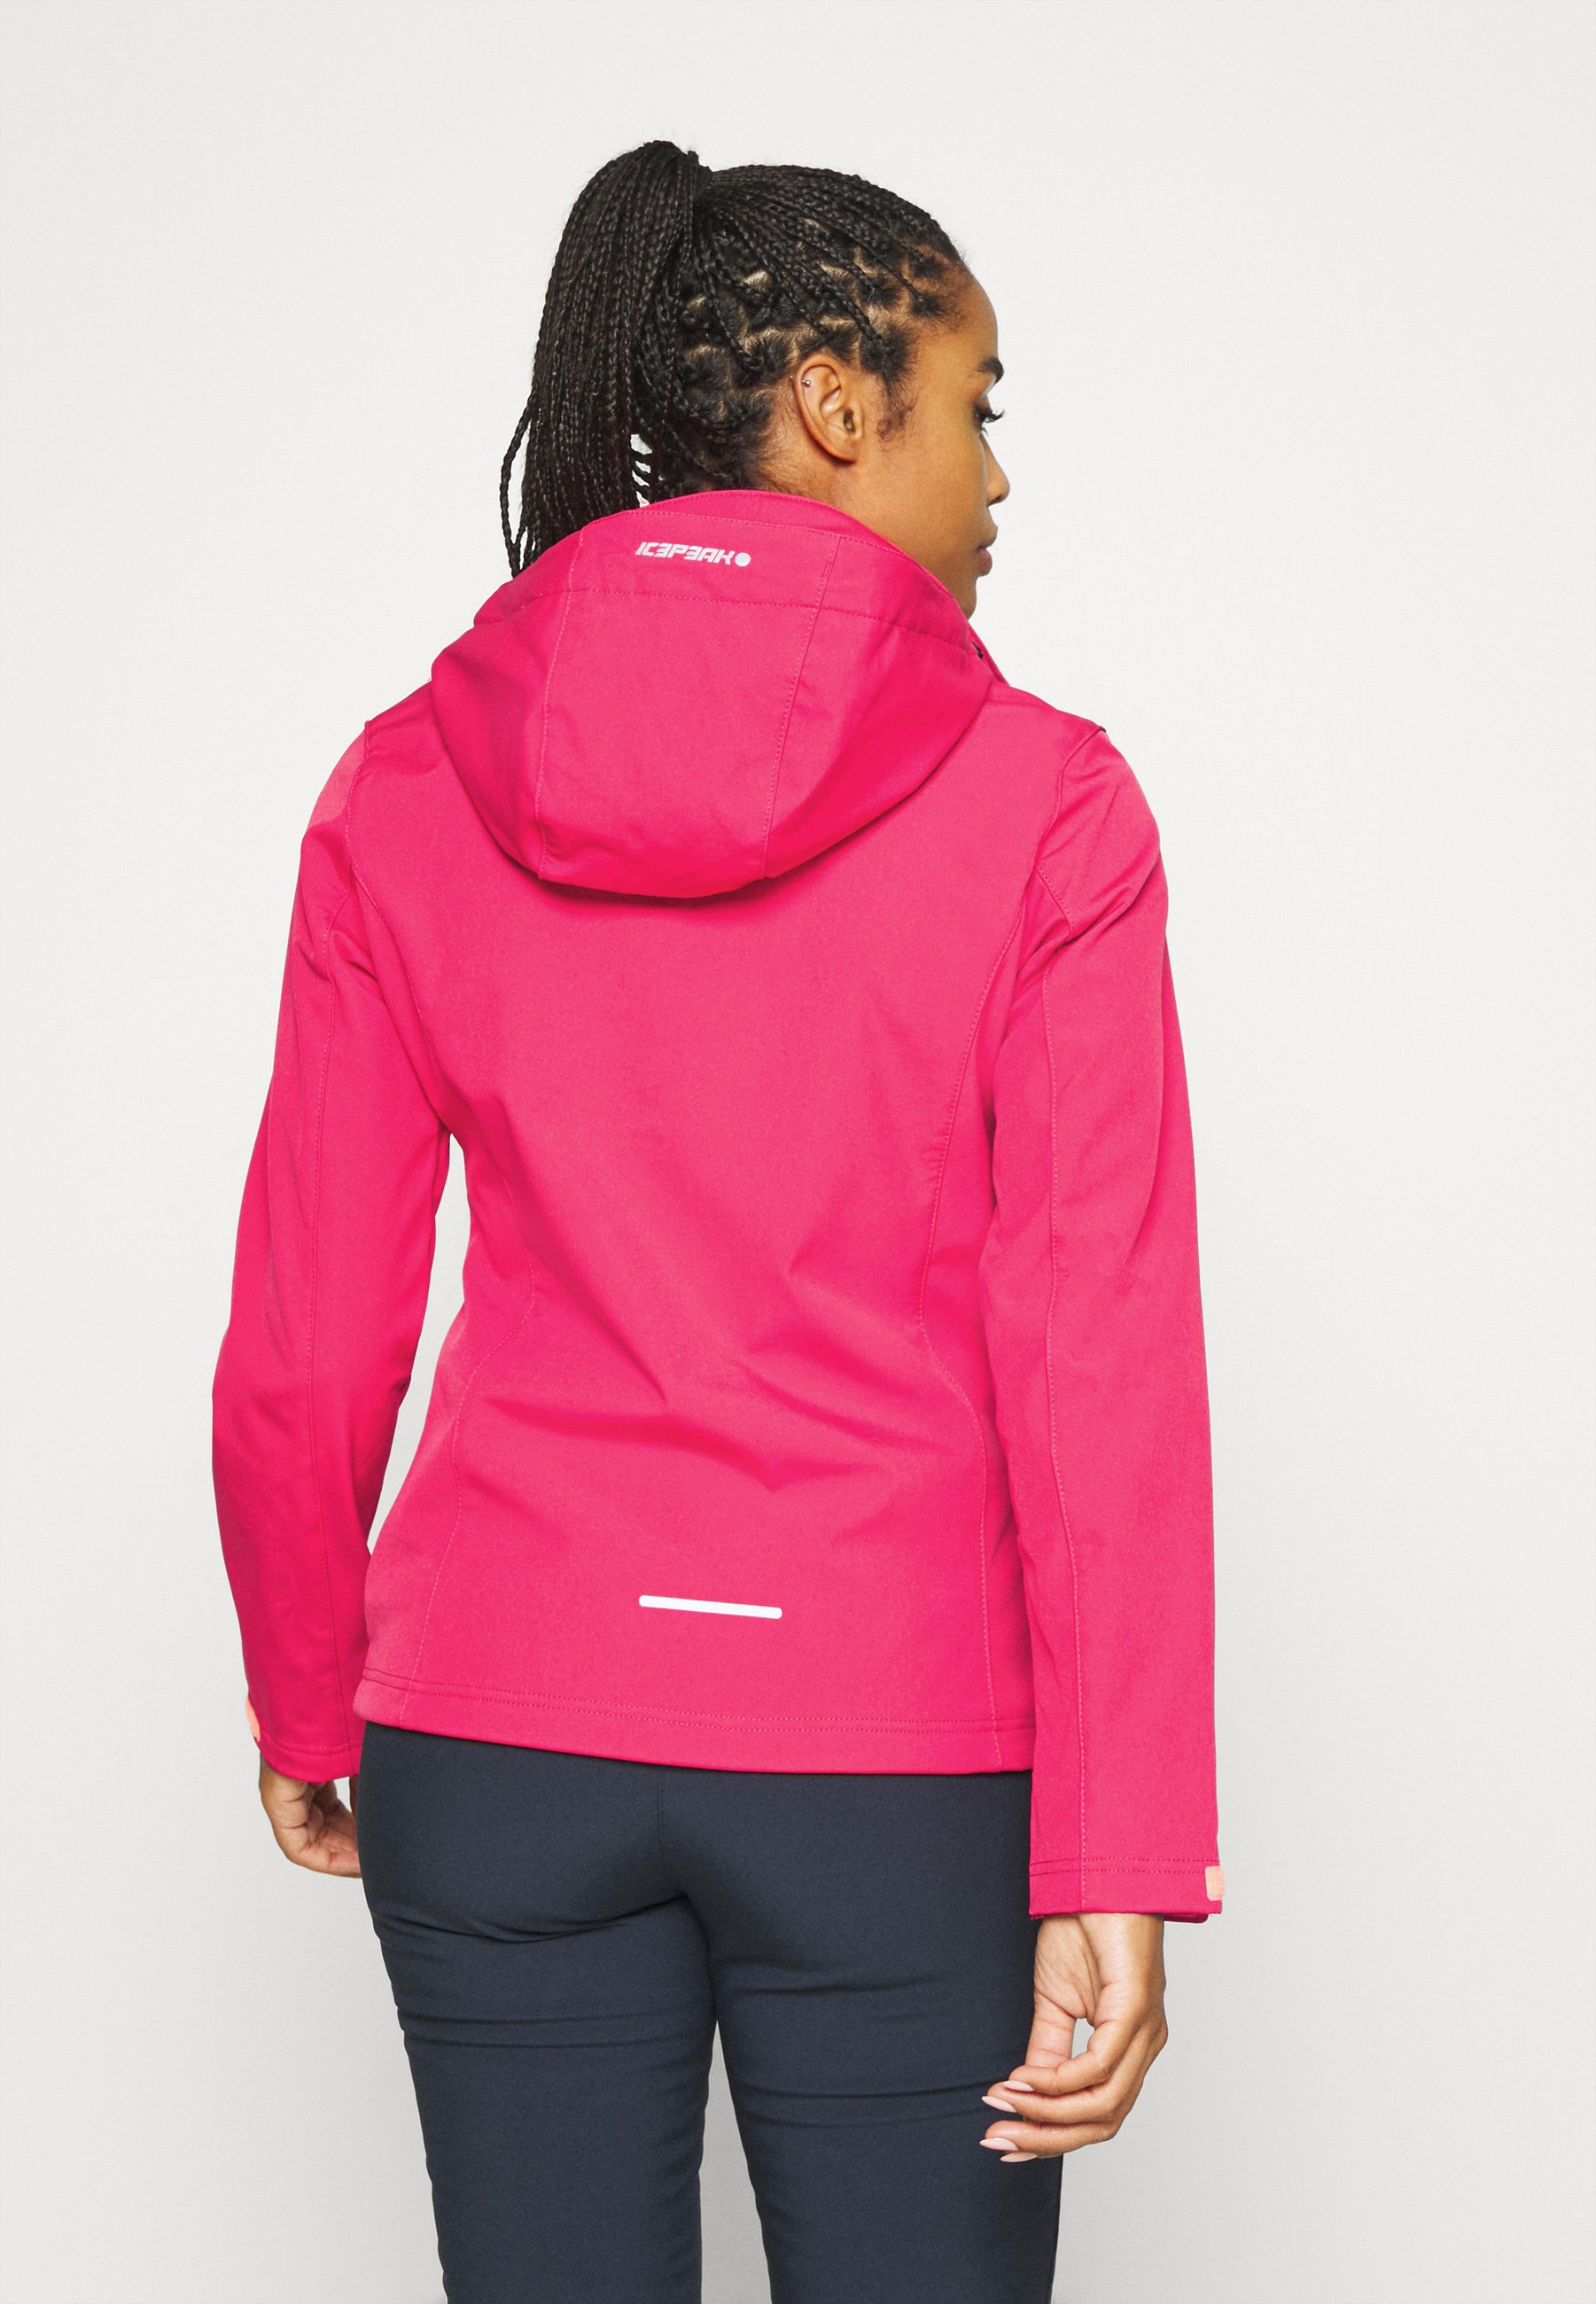 Fashion Style Original Women's Clothing Icepeak BOISE Soft shell jacket coral red KM95IzcYW EJMuBfcCu